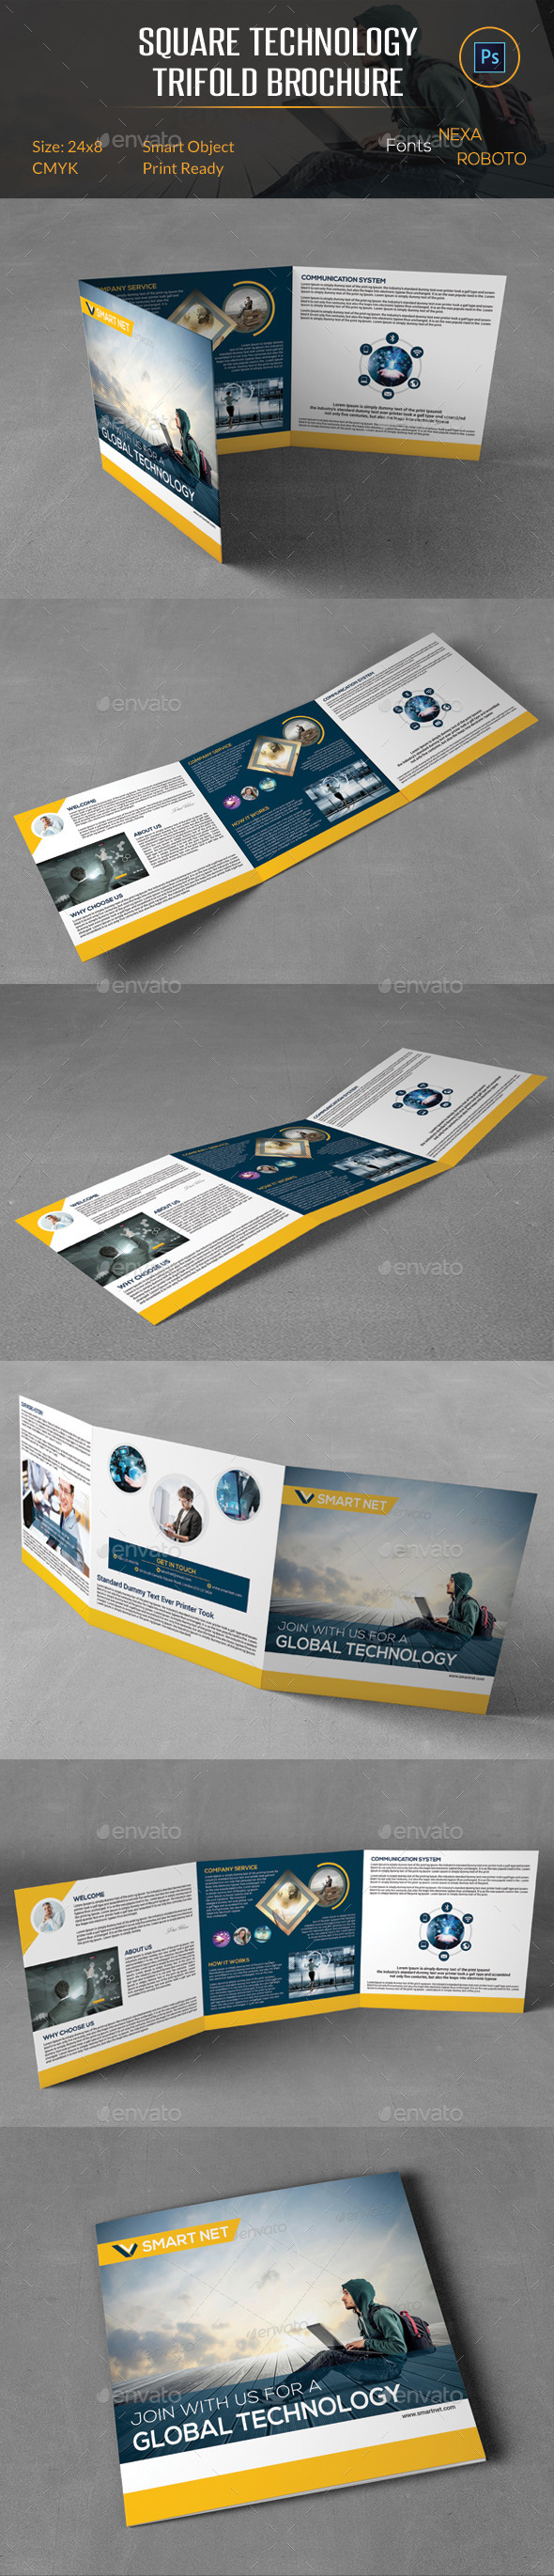 GraphicRiver Square Technology Trifold Brochure 10247634